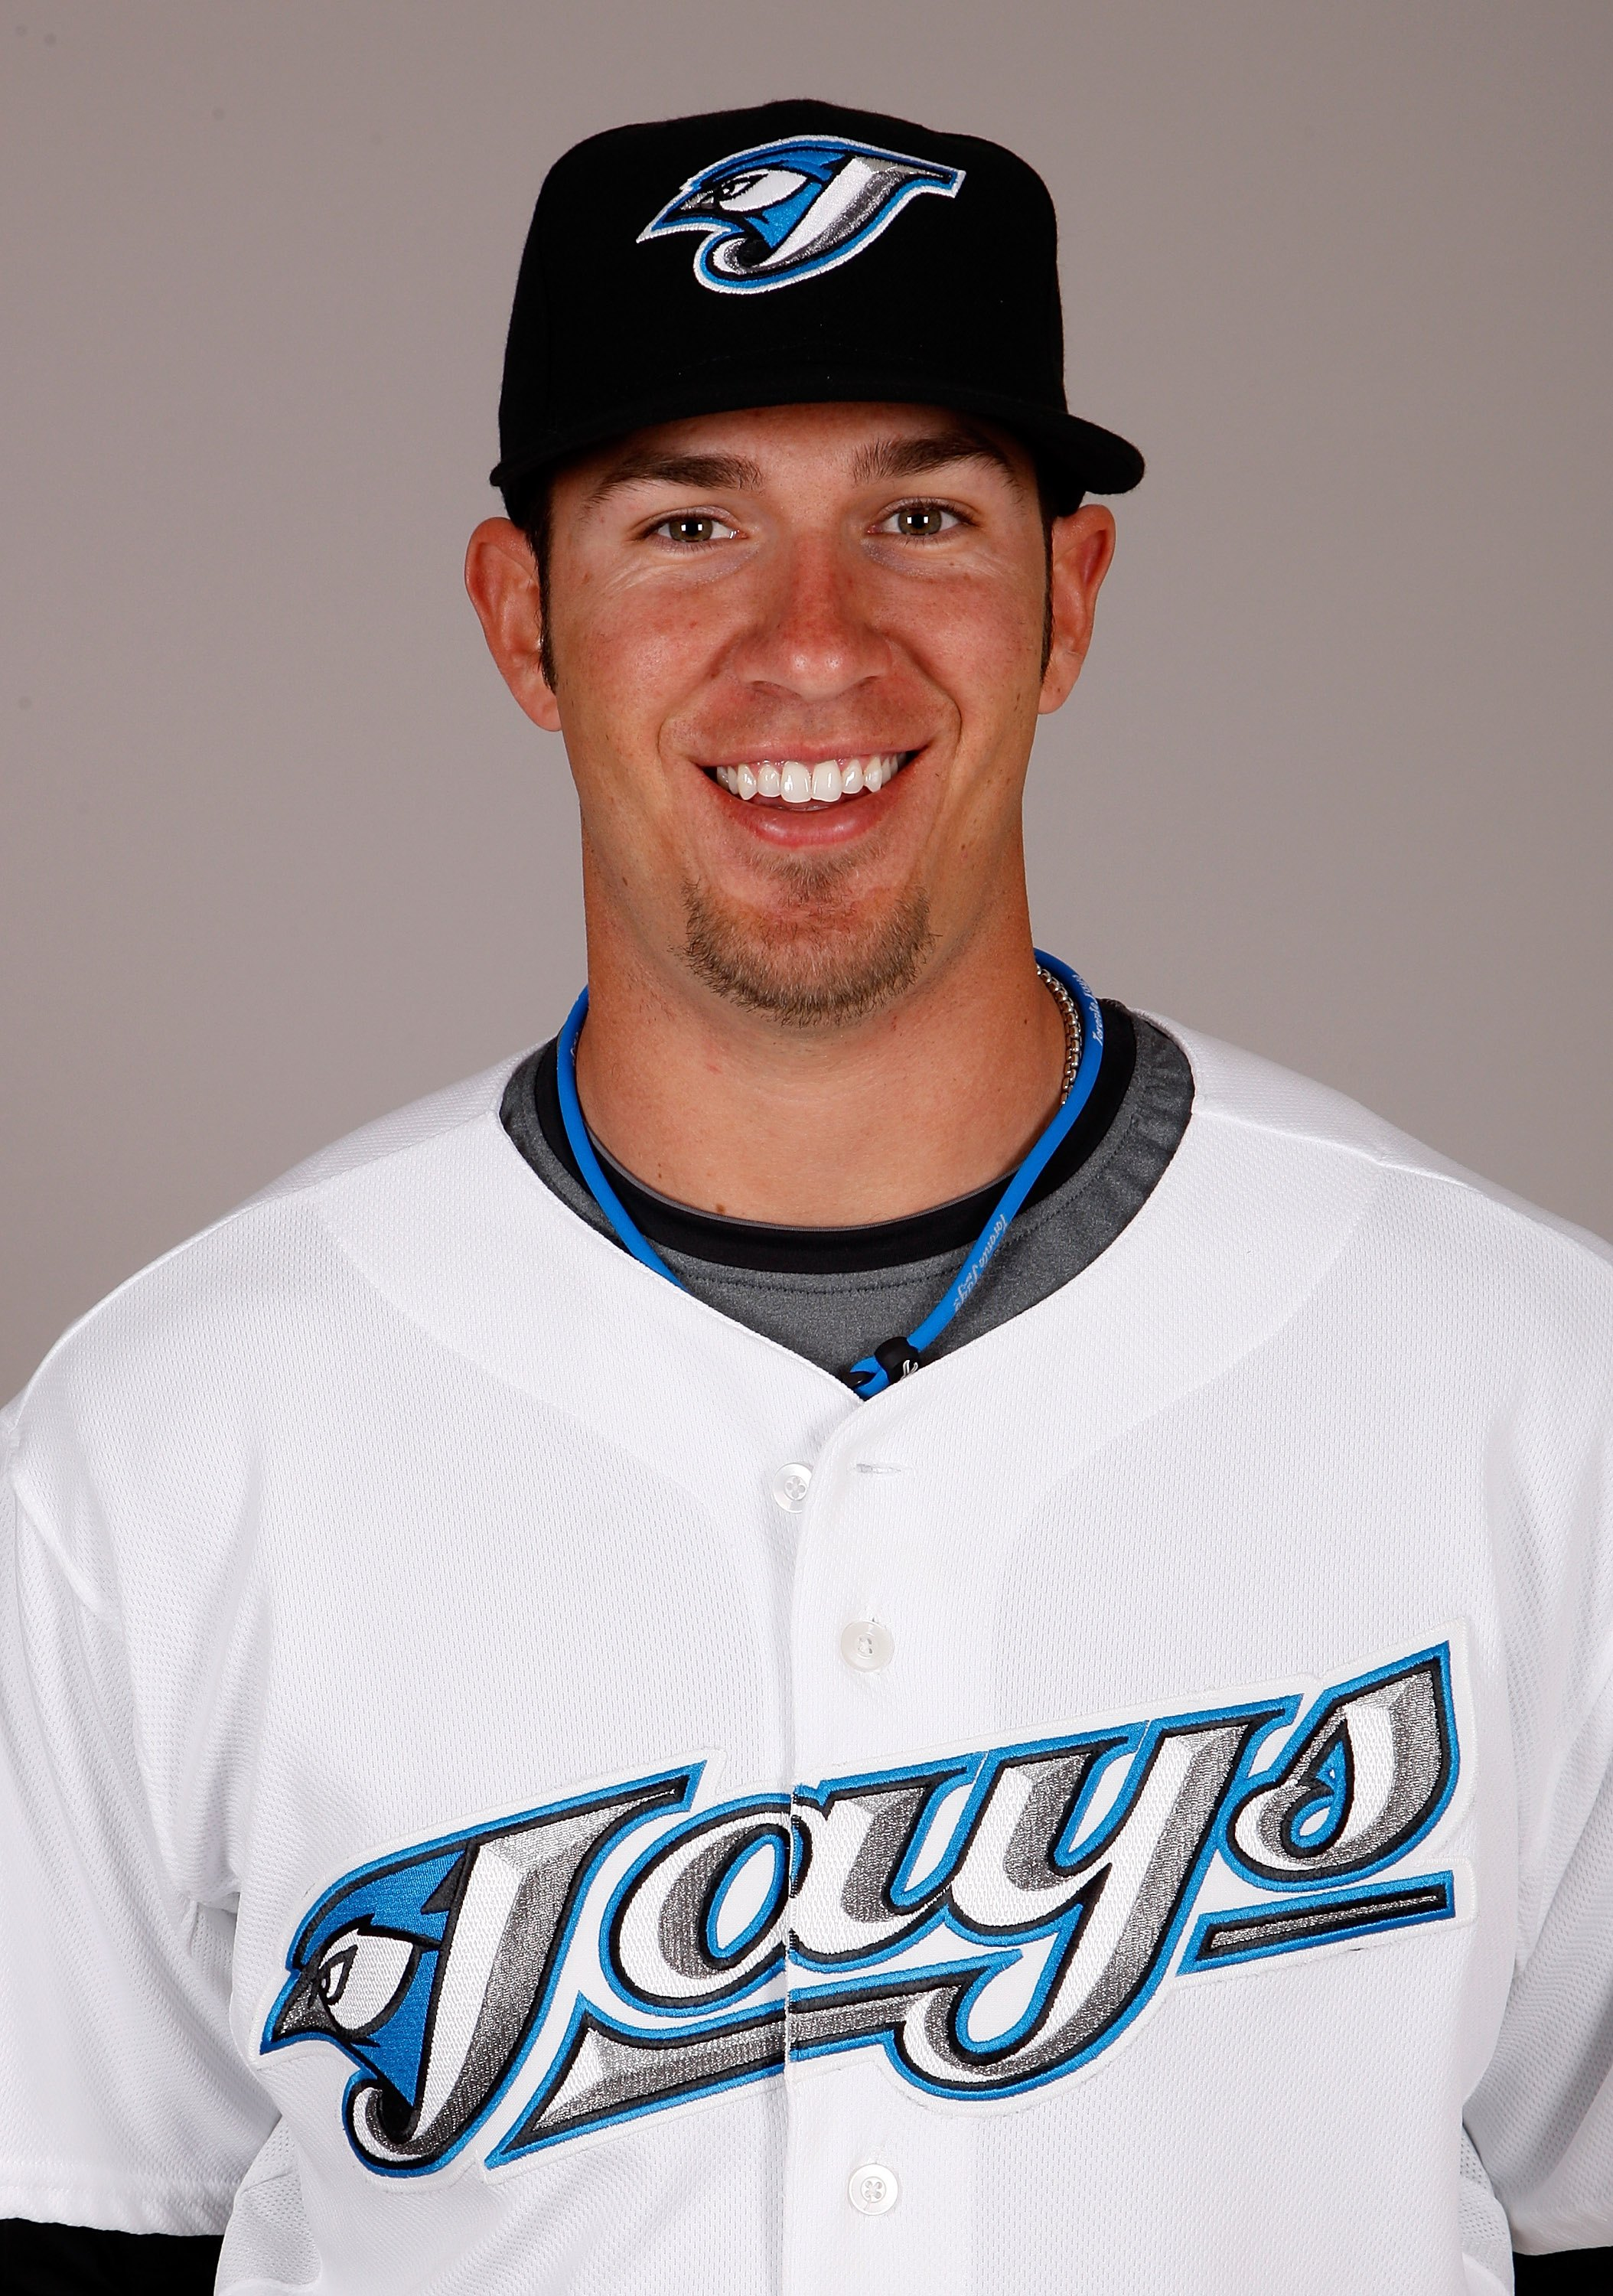 DUNEDIN, FL - FEBRUARY 23:  JP Arencibia #9 of the Toronto Blue Jays poses during photo day at the Bobby Mattick Training Center at Englebert Complex on February 23, 2009 in Dunedin, Florida.  (Photo by J. Meric/Getty Images)